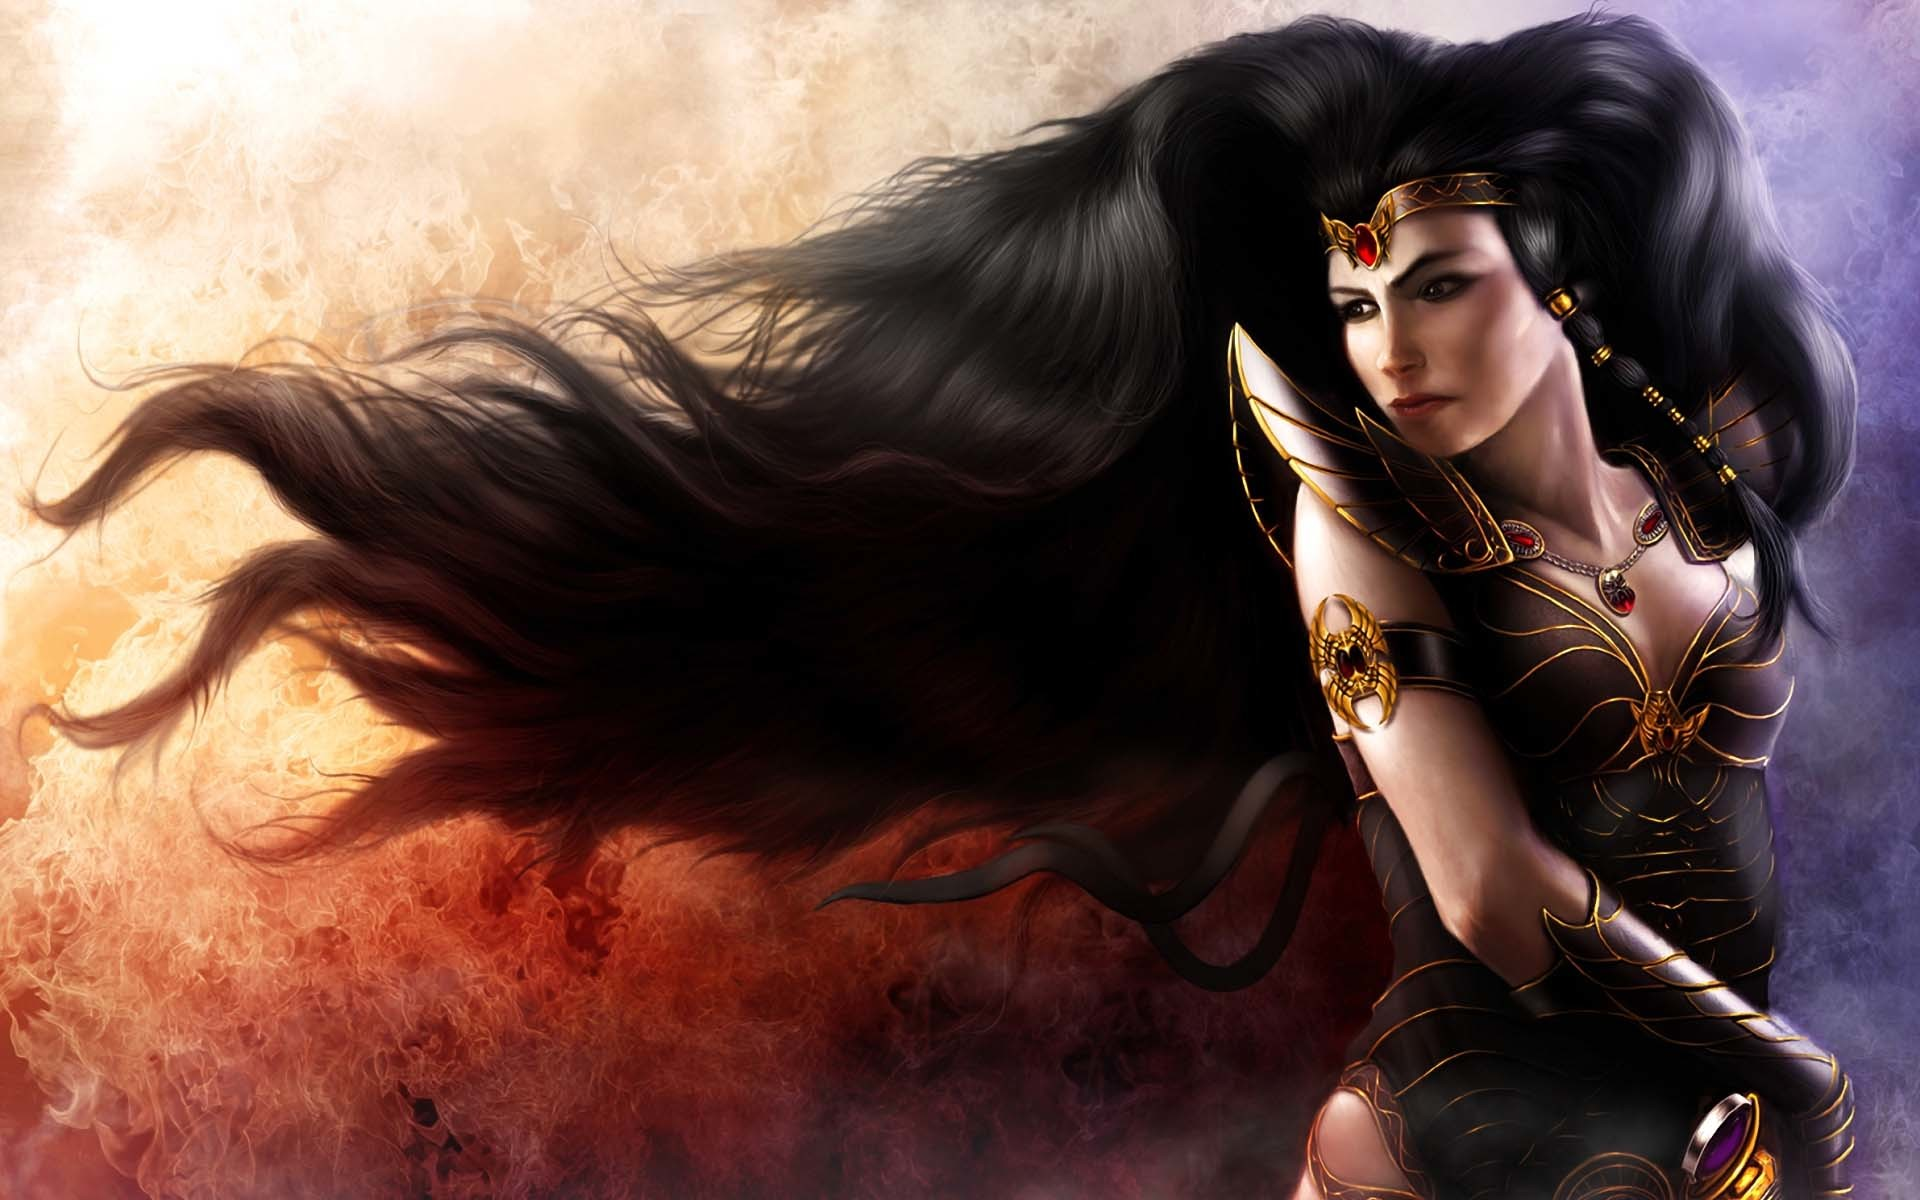 Res: 1920x1200, Movies Wallpaper. Download the following wonder woman ...